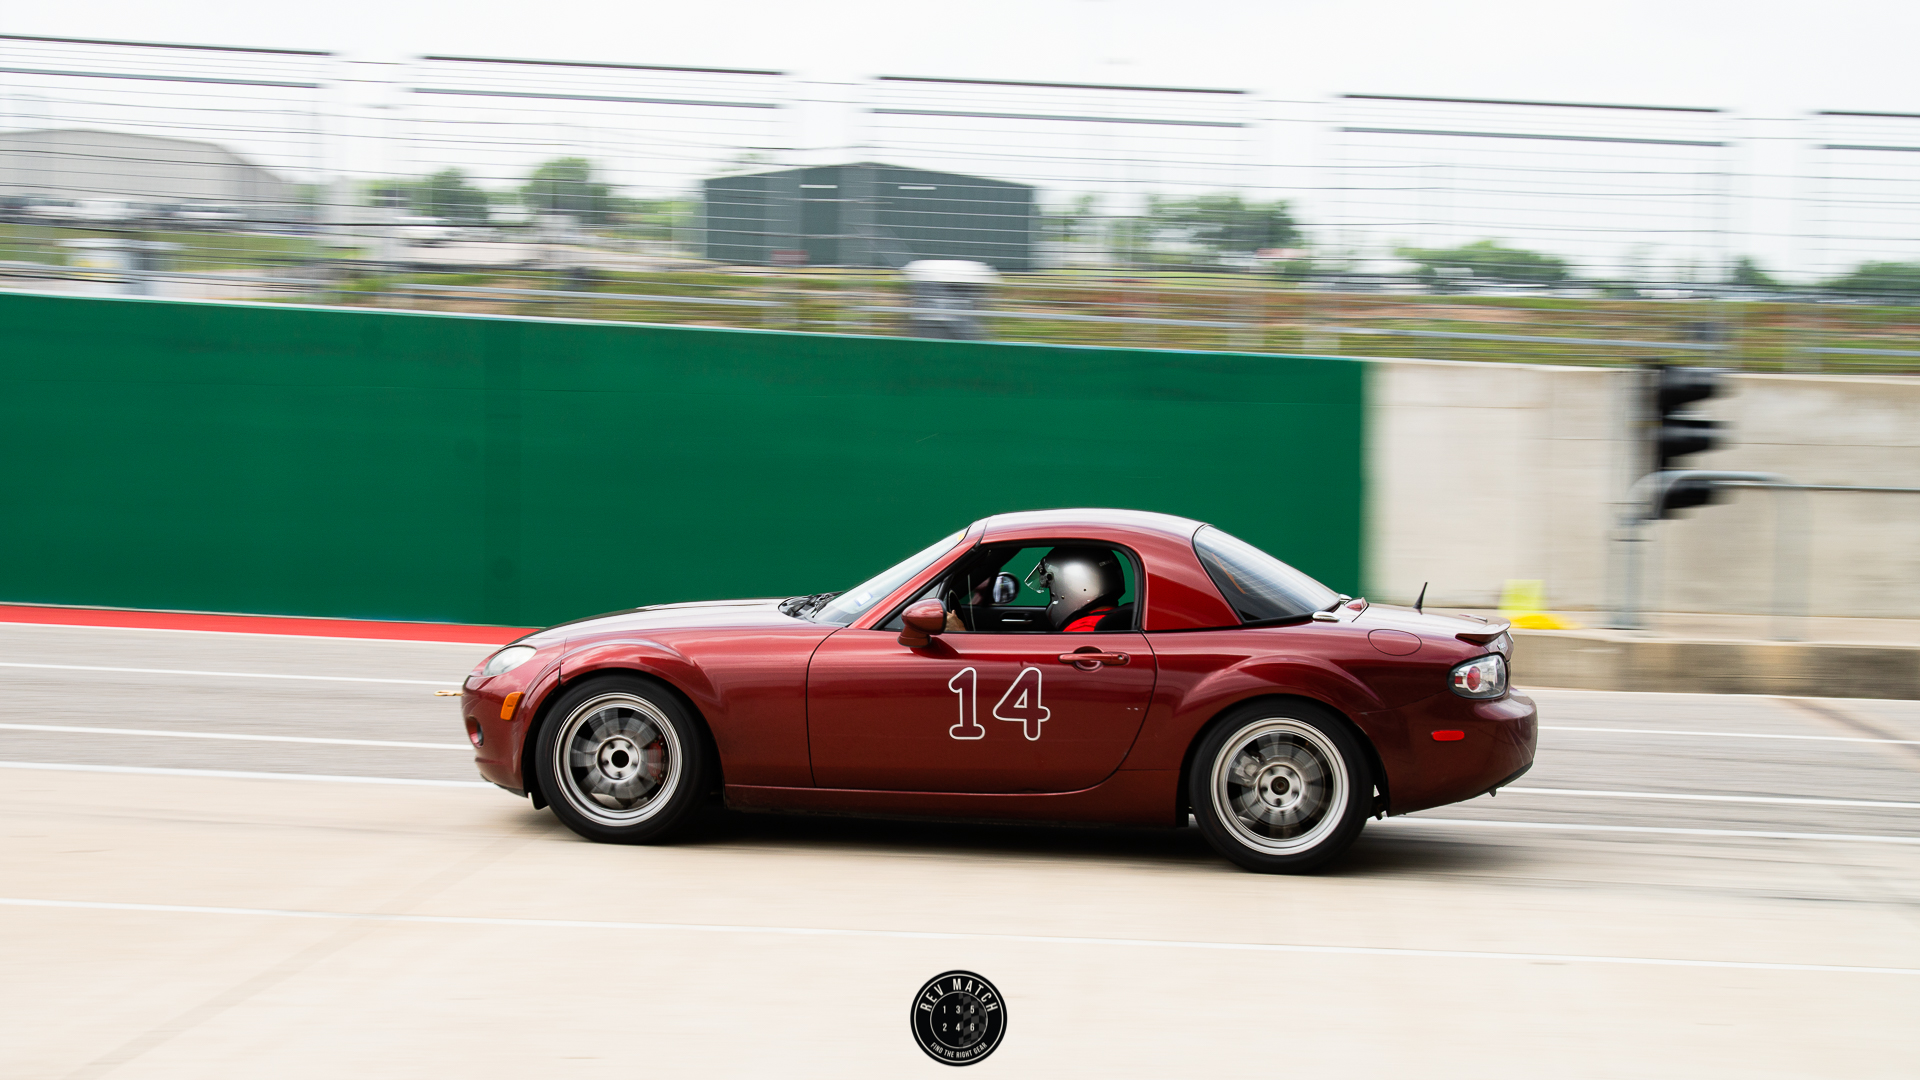 Edge Addict COTA May 2019 Rev Match Media-83.jpg